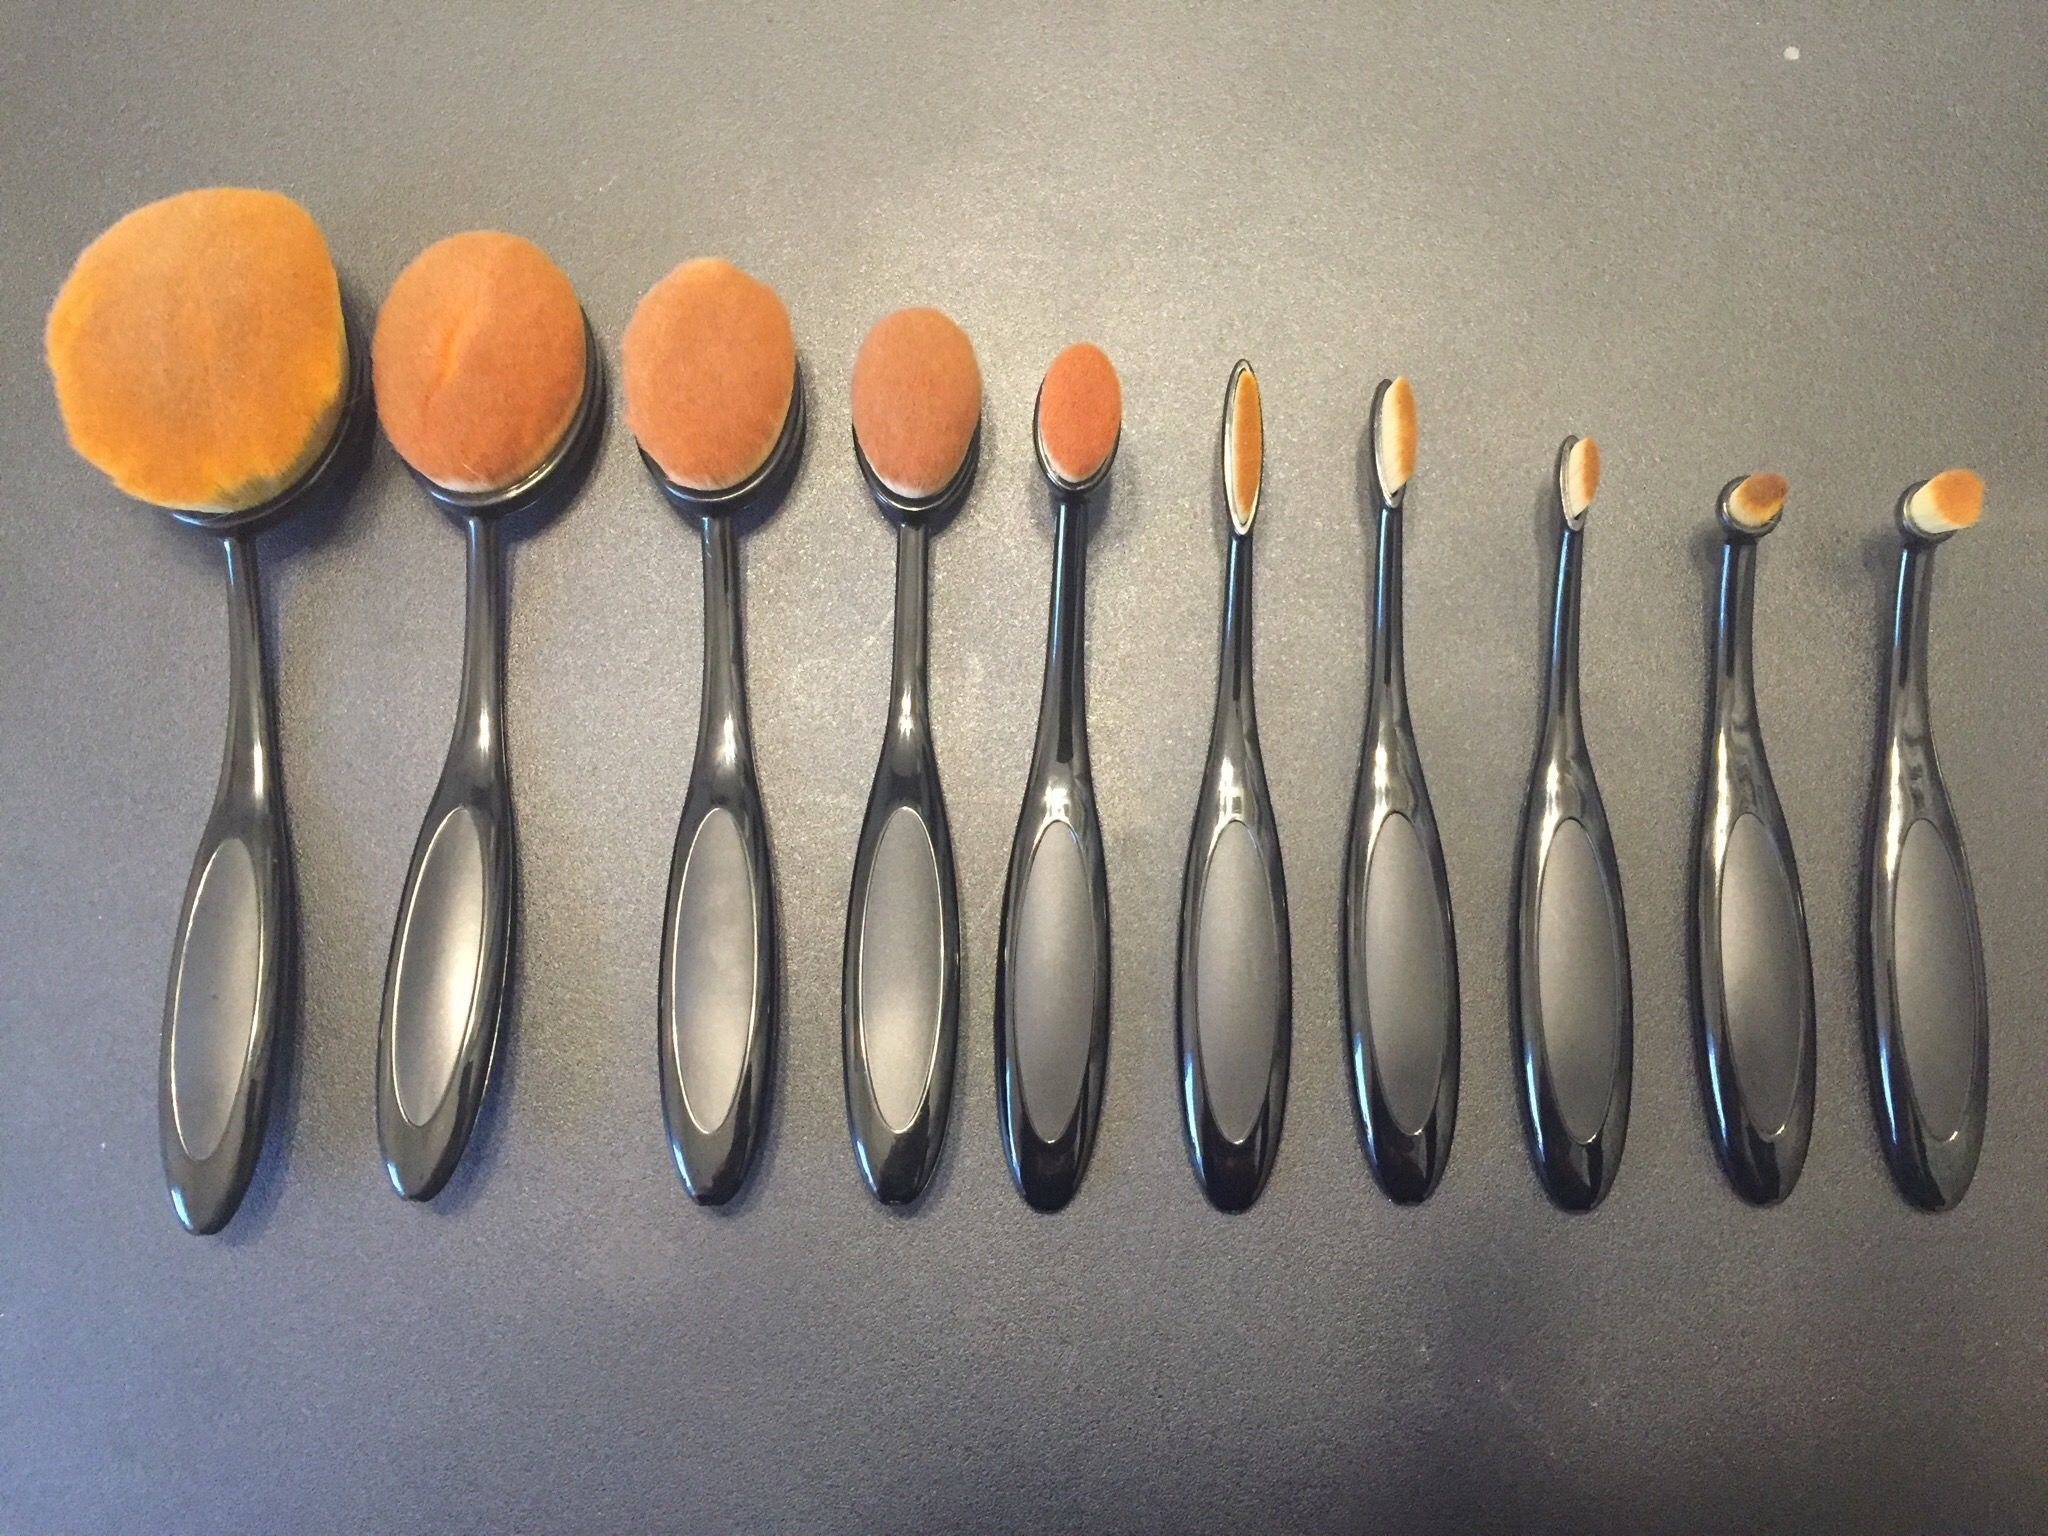 Oval Brush Set Review Behind the Scenes Makeup